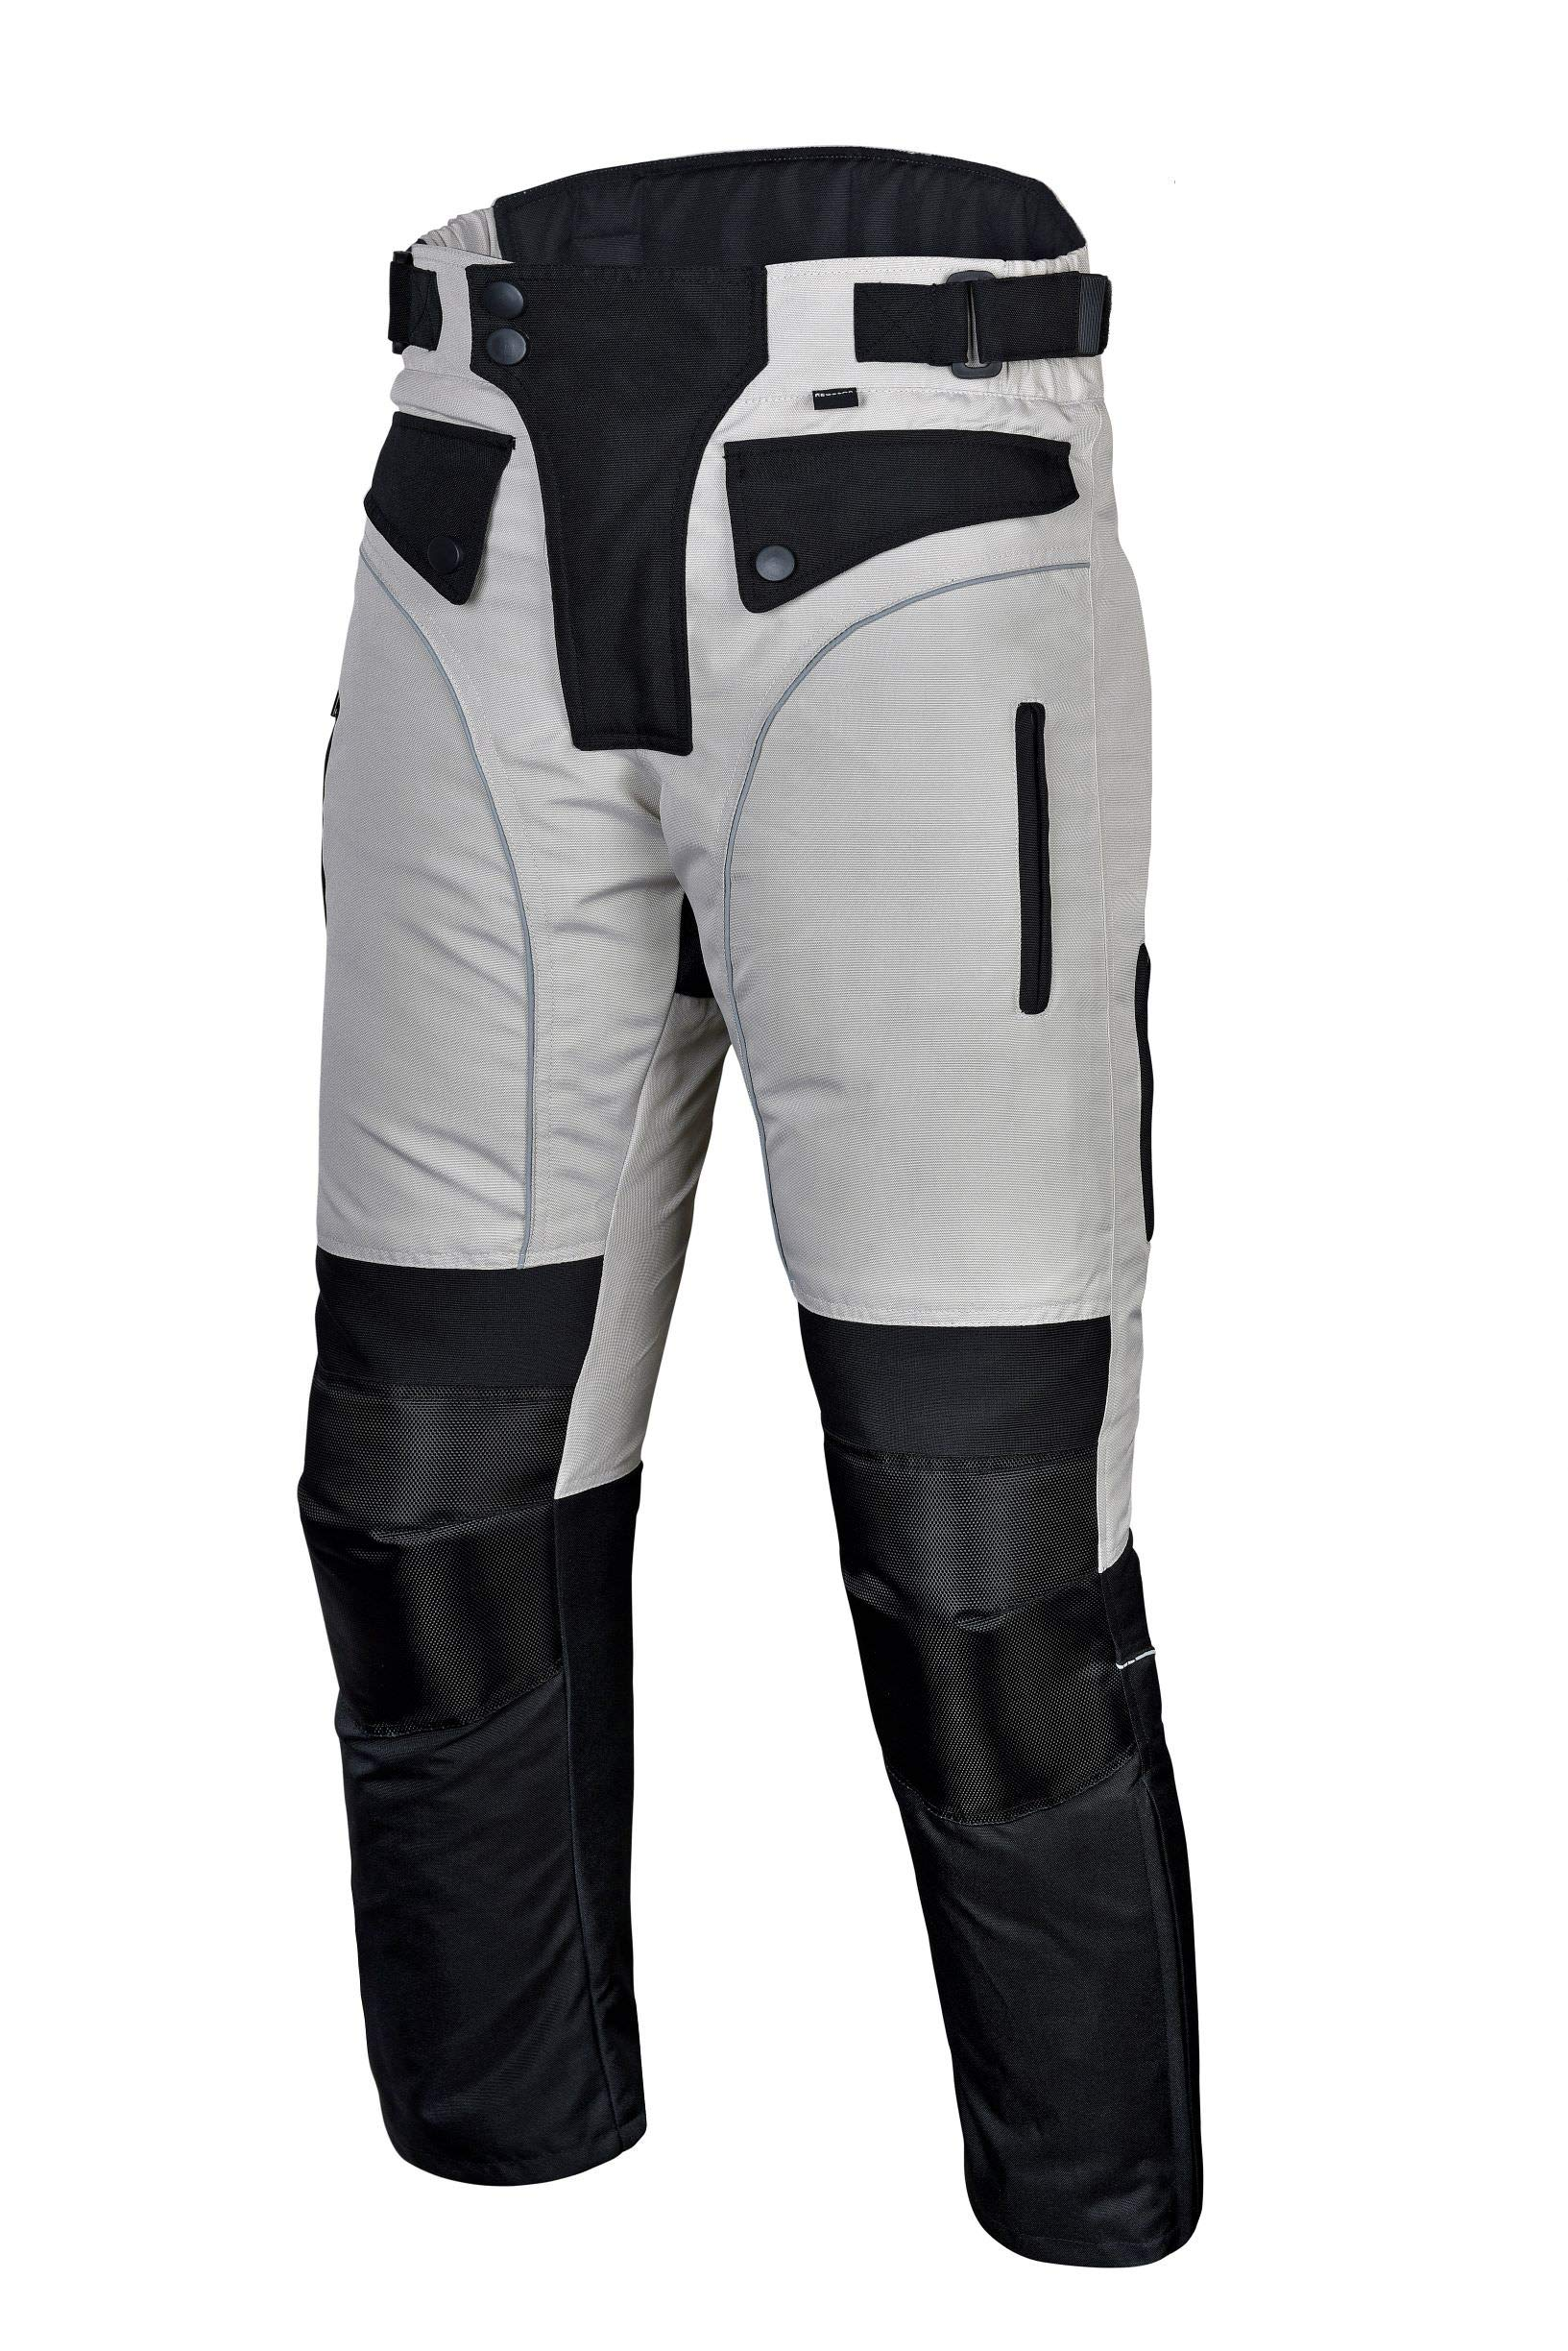 Mens Motorcycle Biker Waterproof, Windproof Riding Pants Gray with Removable CE Armor PT1 (2XL) by WICKED STOCK